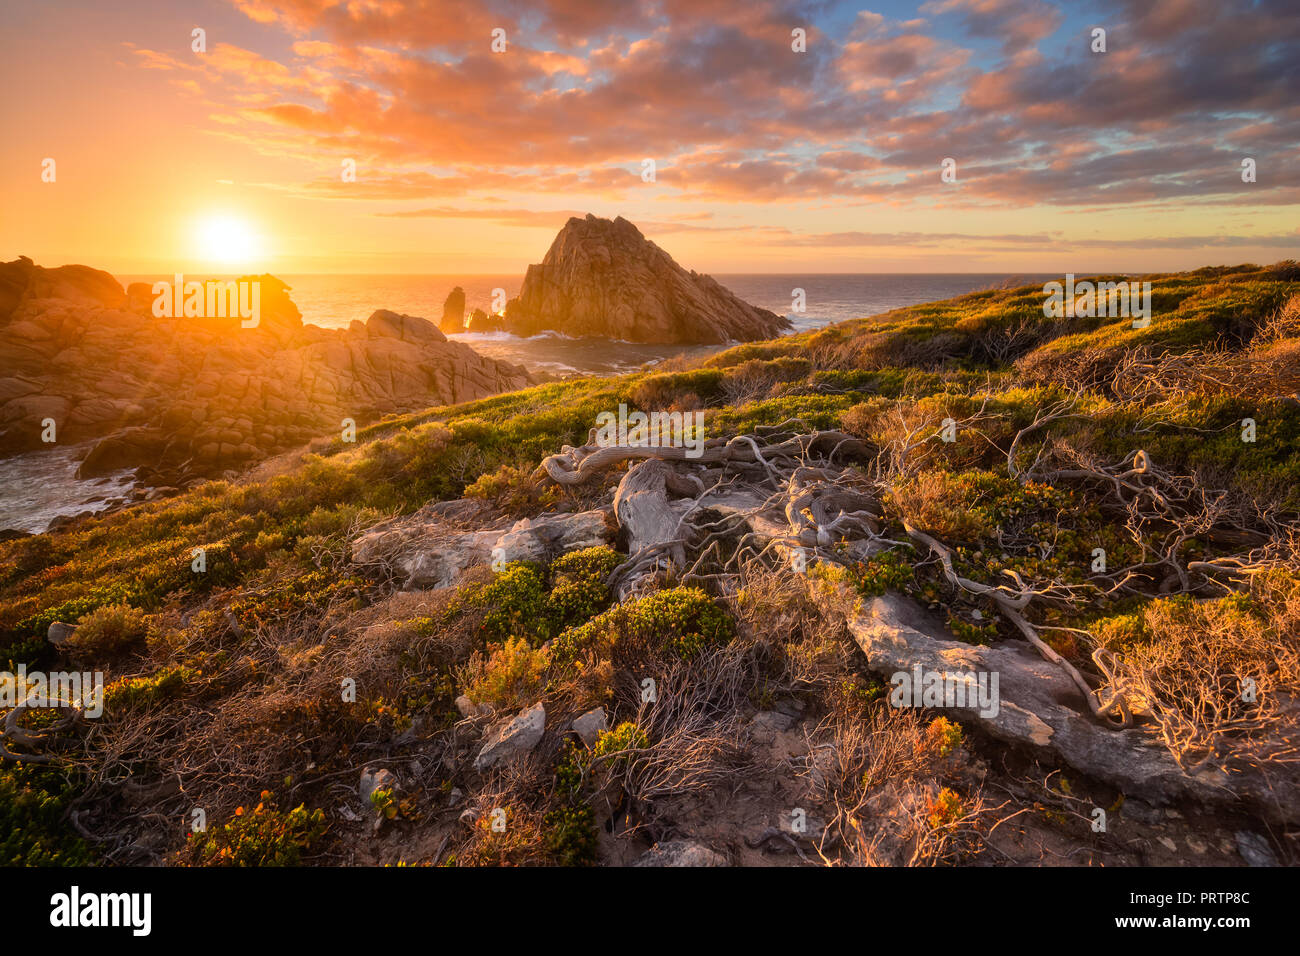 Sugarloaf Rock - Stock Image